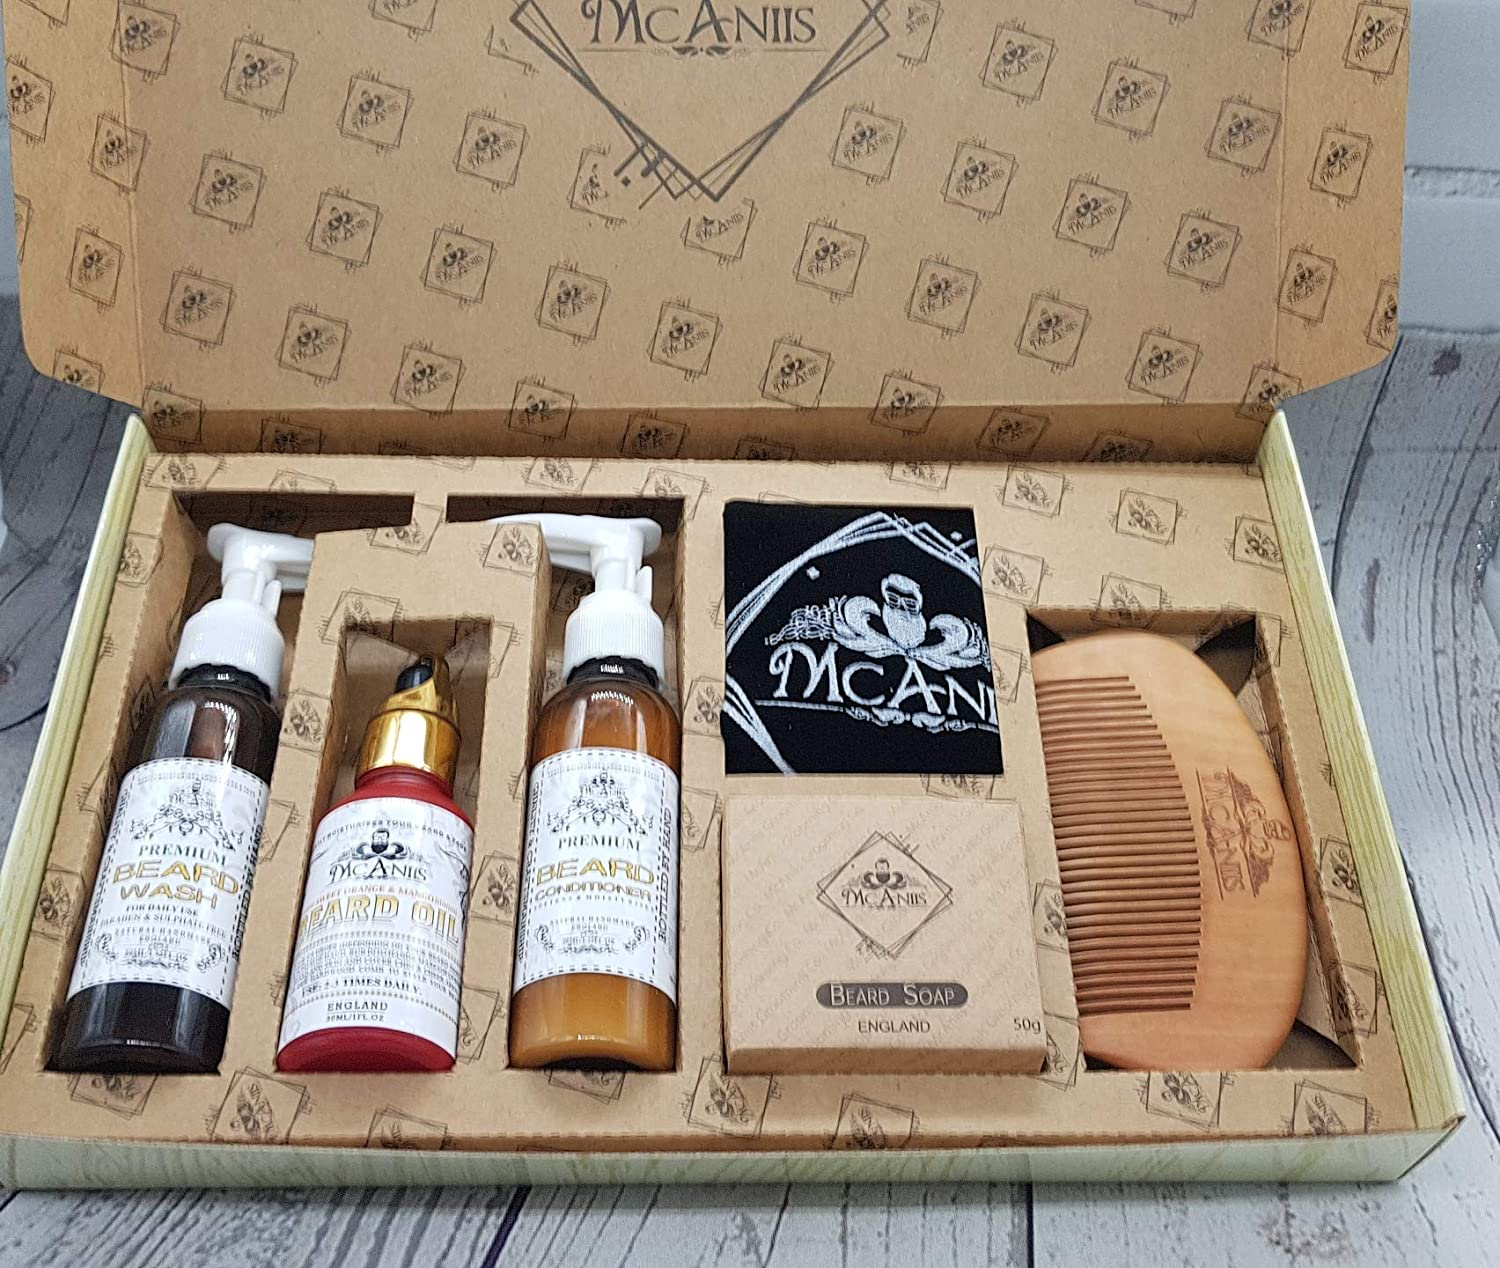 Sale!! Over 30% Off Premium All Natural XL Beard & Moustache Grooming Gift Set - 6 Pieces For Dry & Rough Beard With Wash, Conditioner, Soap, Hardwood Comb - Alluring Tropical Orange & Mango Fruit Extract Oil McAniis Grooming Co.